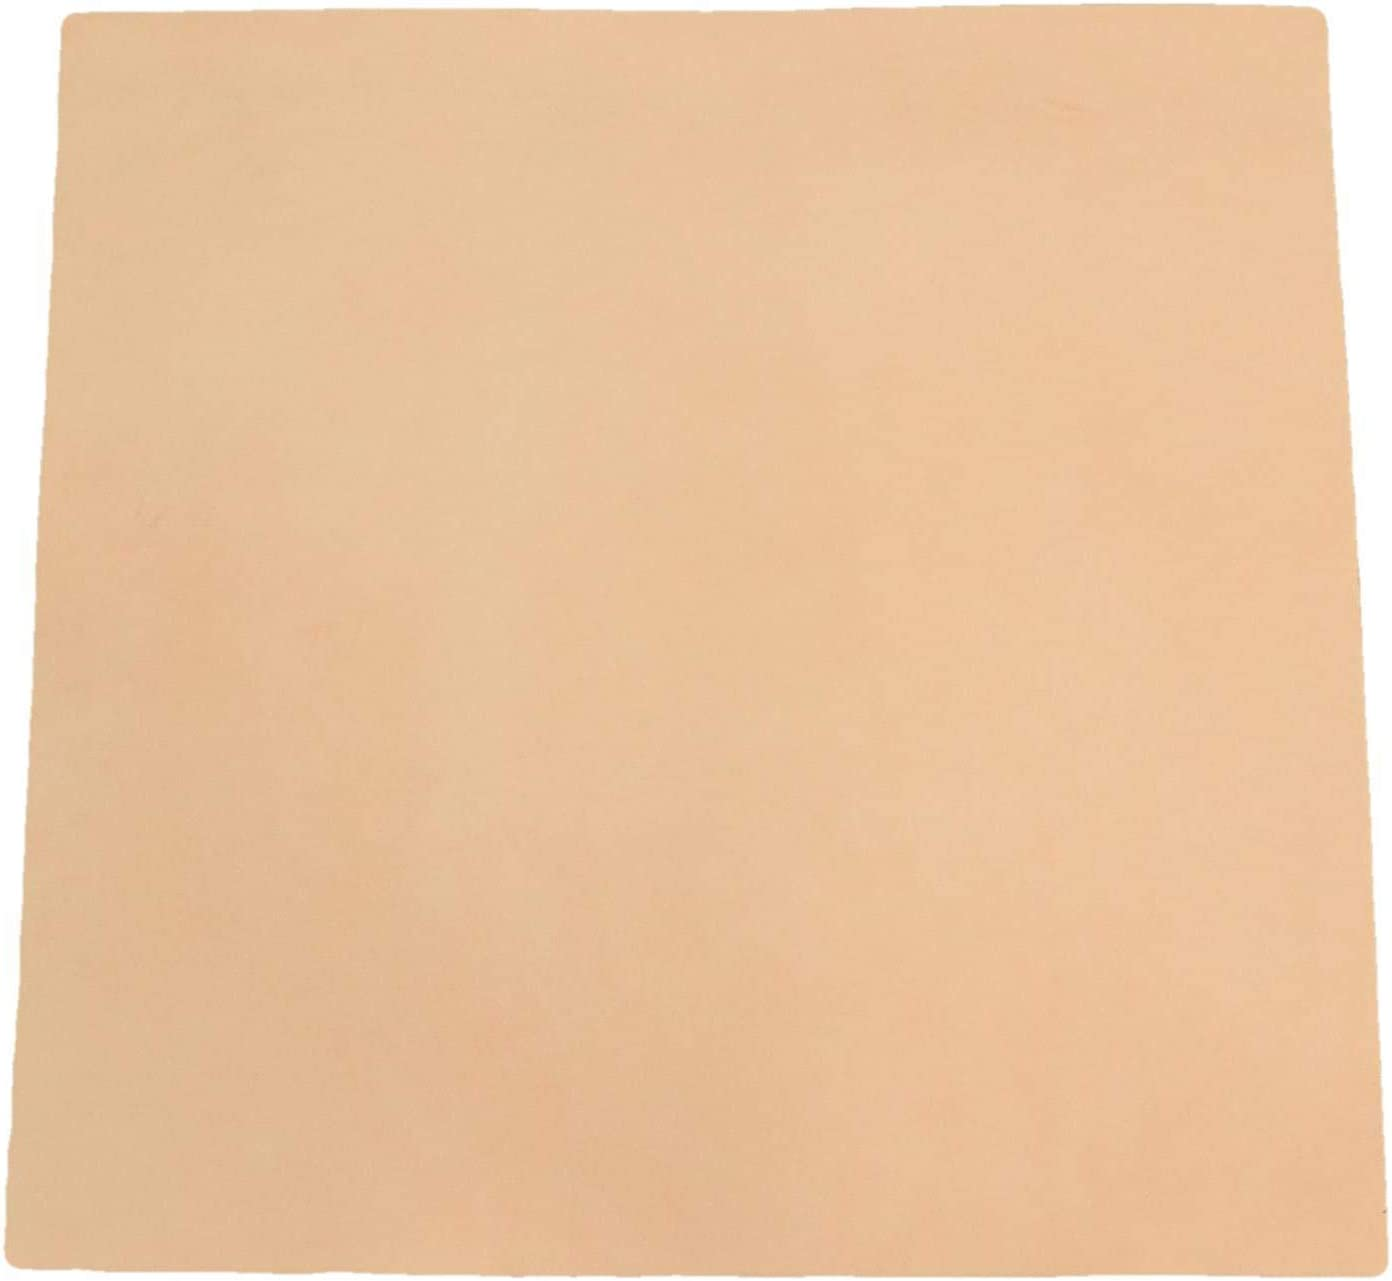 Leather 12x36 or 20x20 THICK Firm VEG tan Natural Vegetable Tanned tooling Cowhide PeggySueAlso\u2122 Choose thickness at checkout